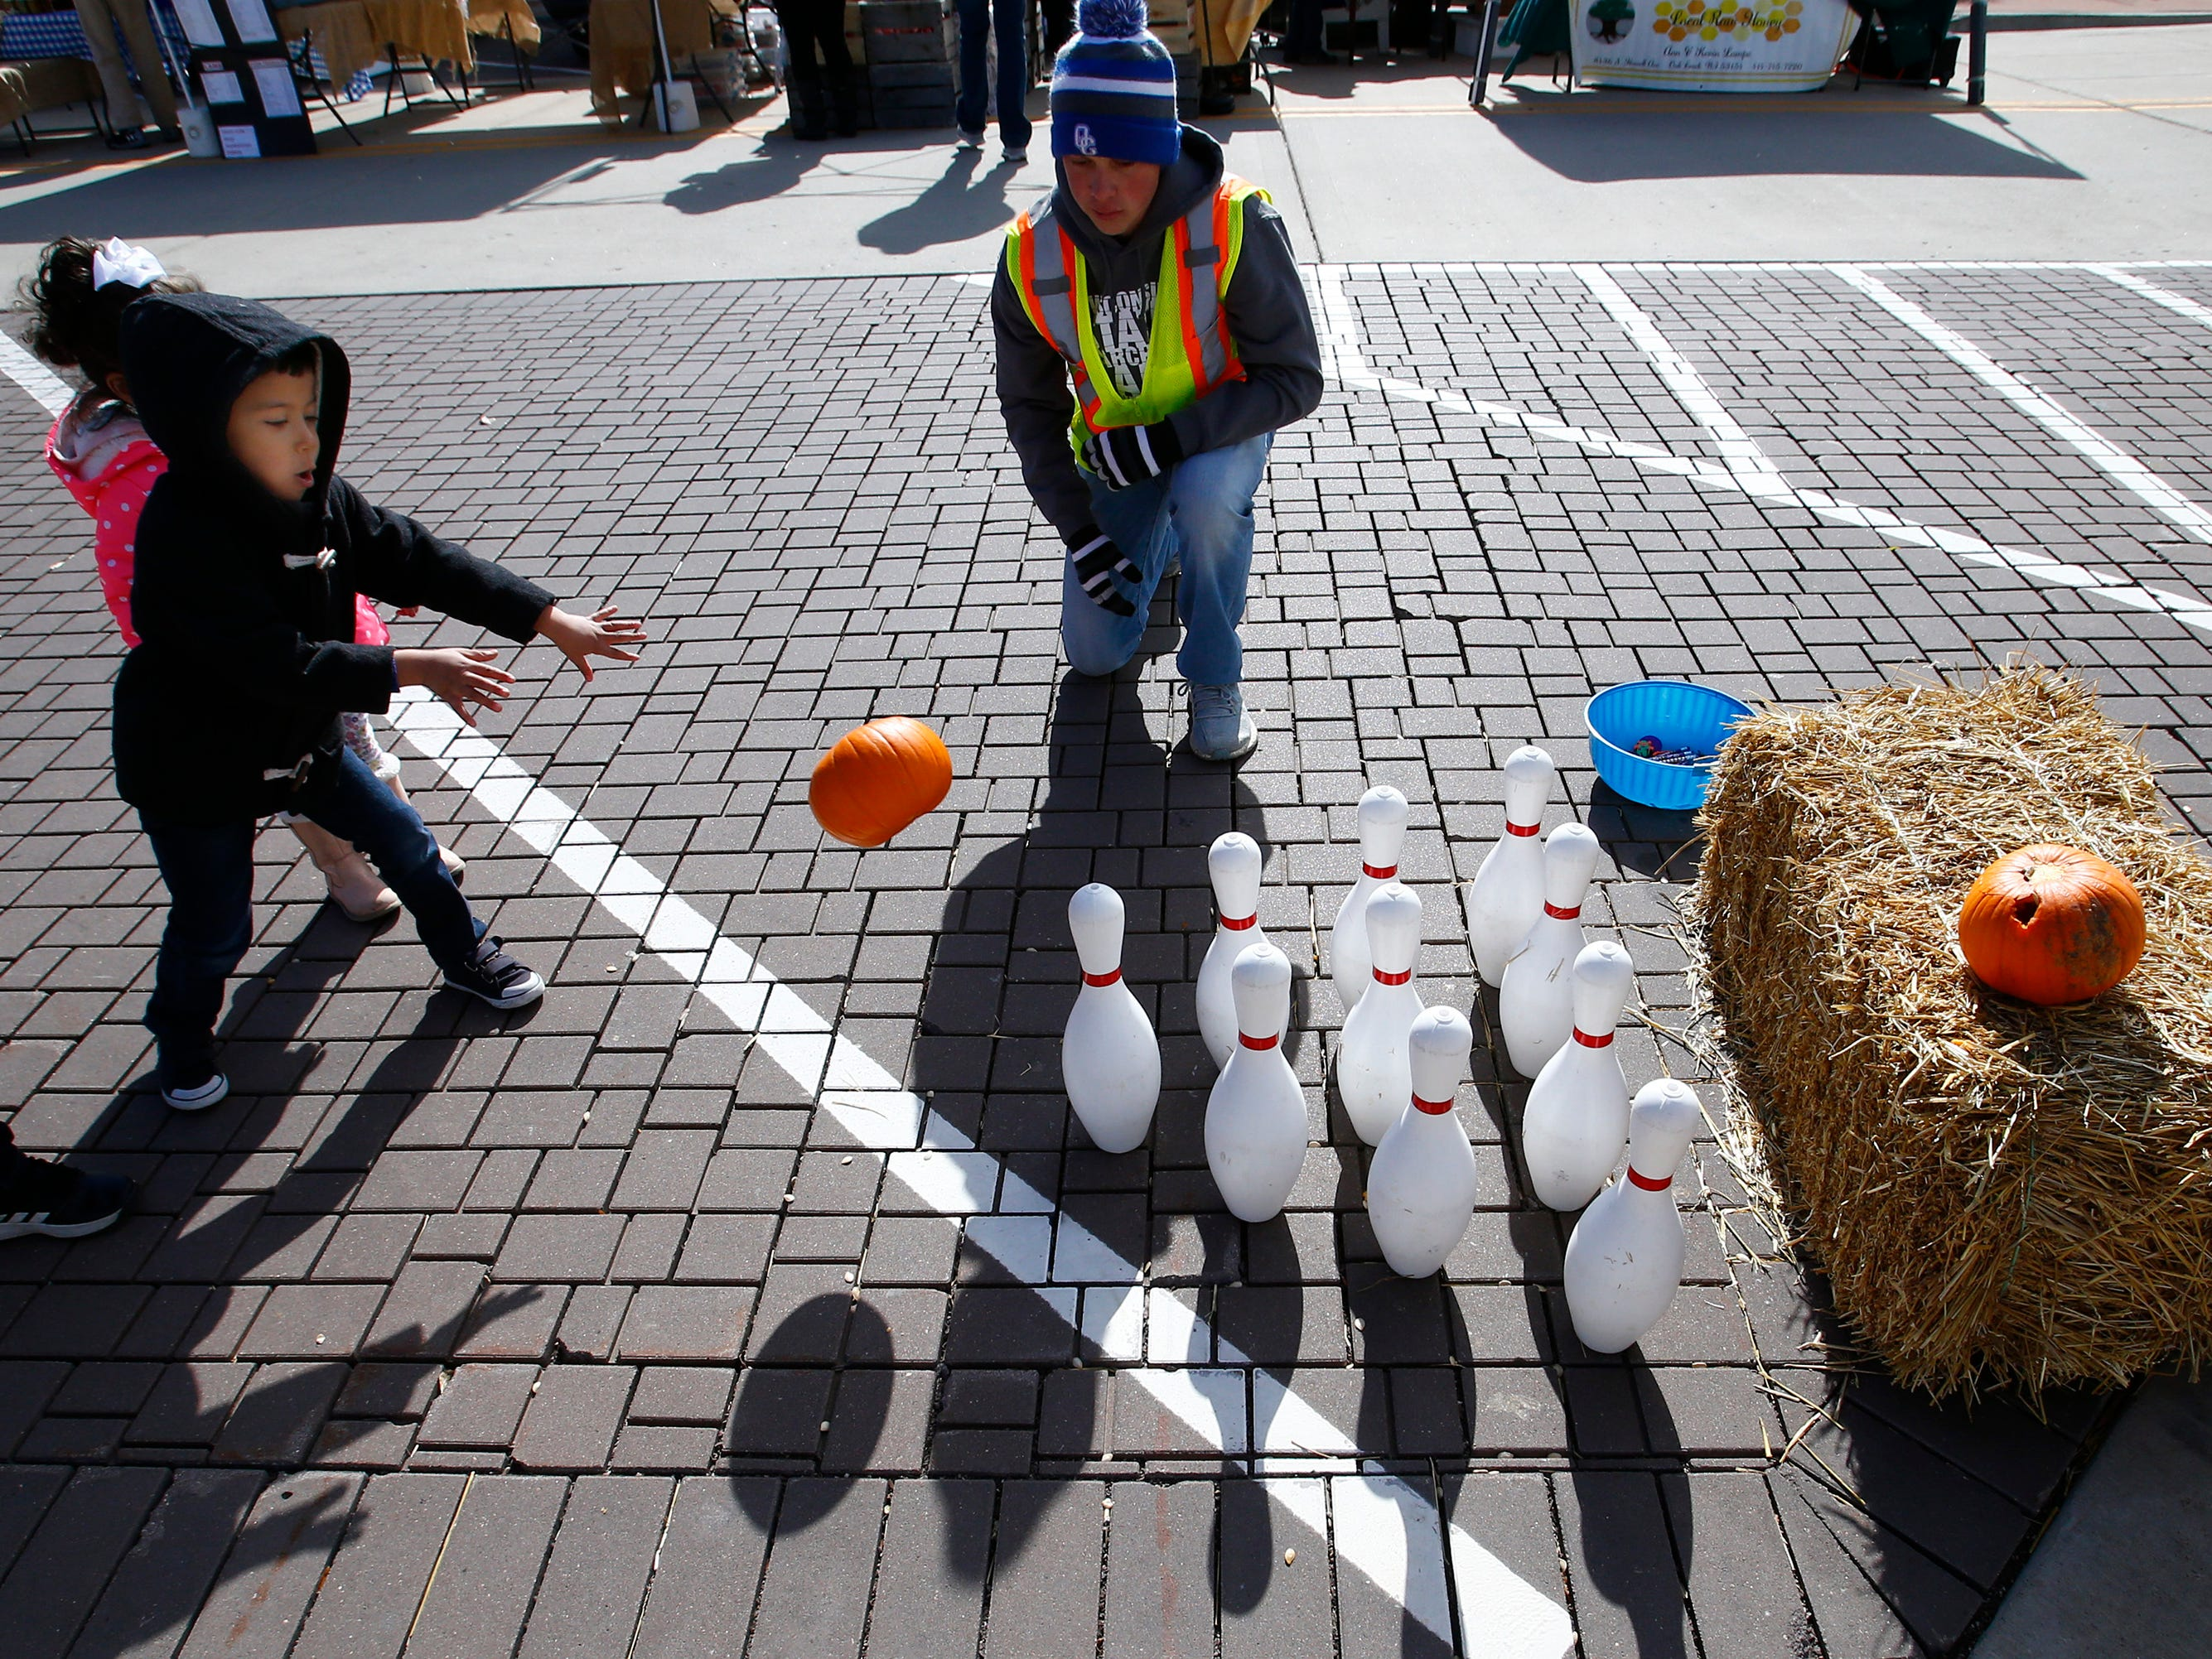 Adam Hasan of South Milwaukee tries Pumpkin Bowling during the Drexel Town Square Fall Festival on Oct. 20.